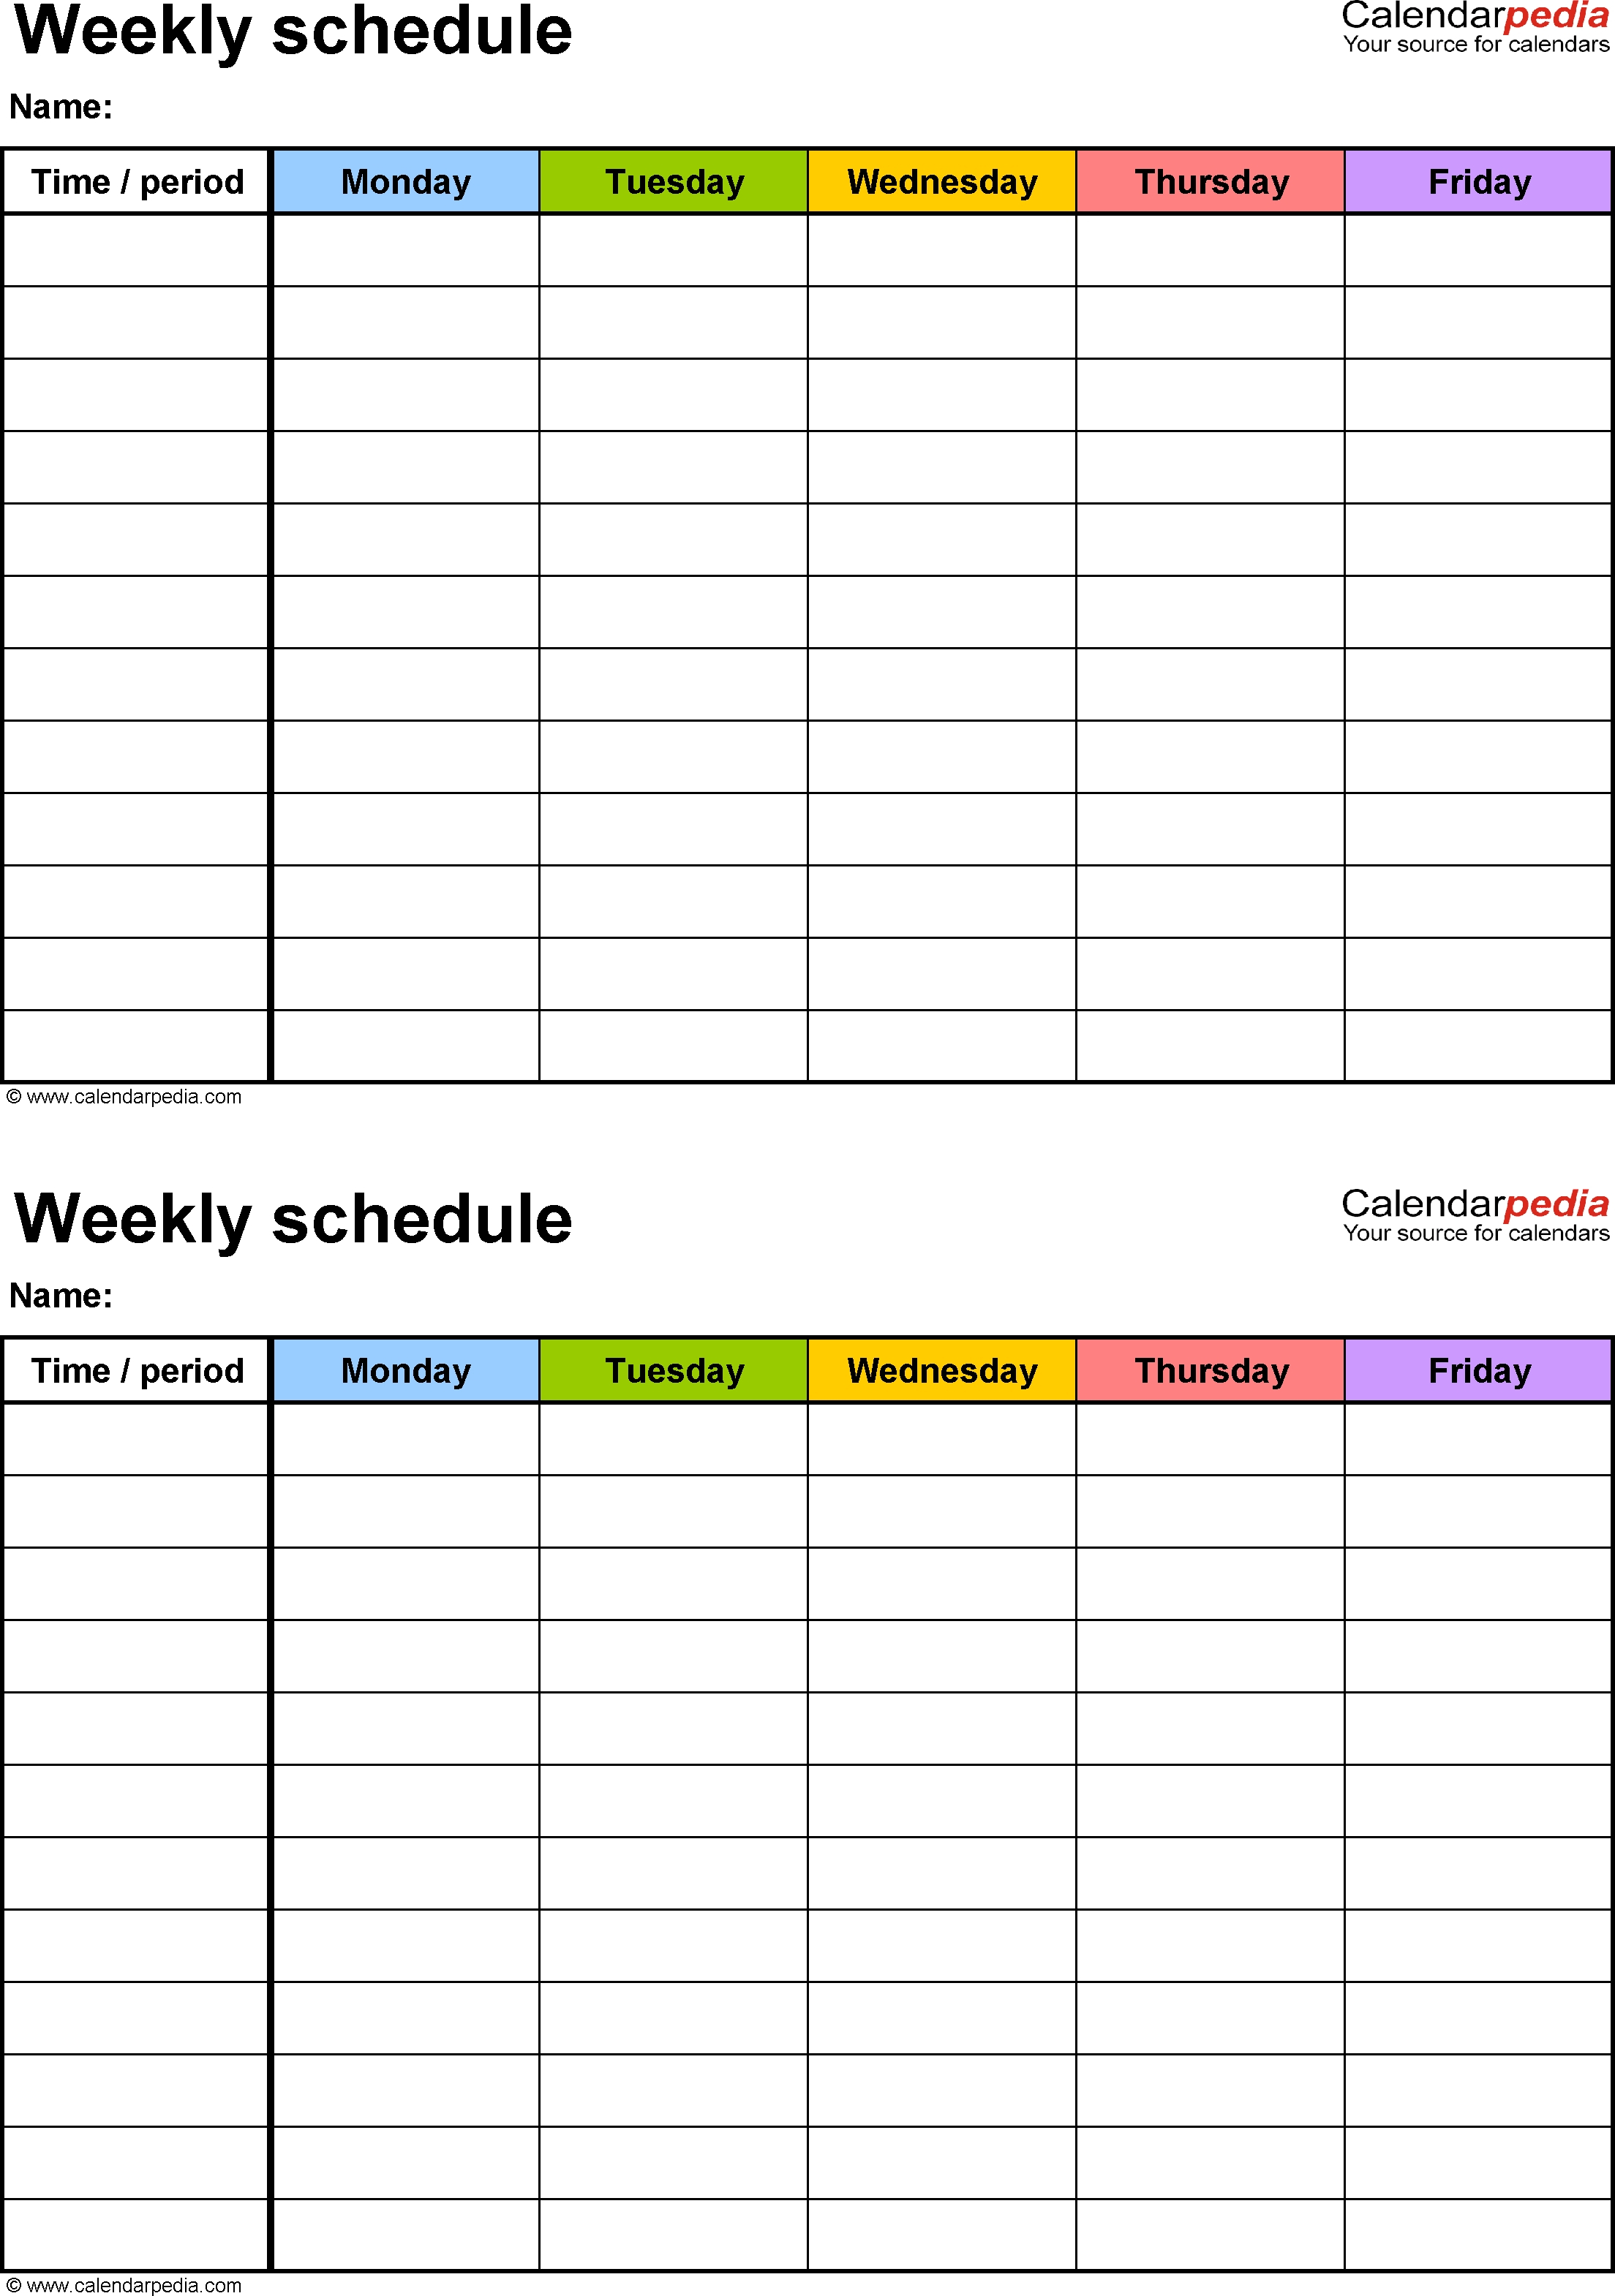 Template Monday To Friday | Calendar Template Printable Monday-Friday Calendar Template Word